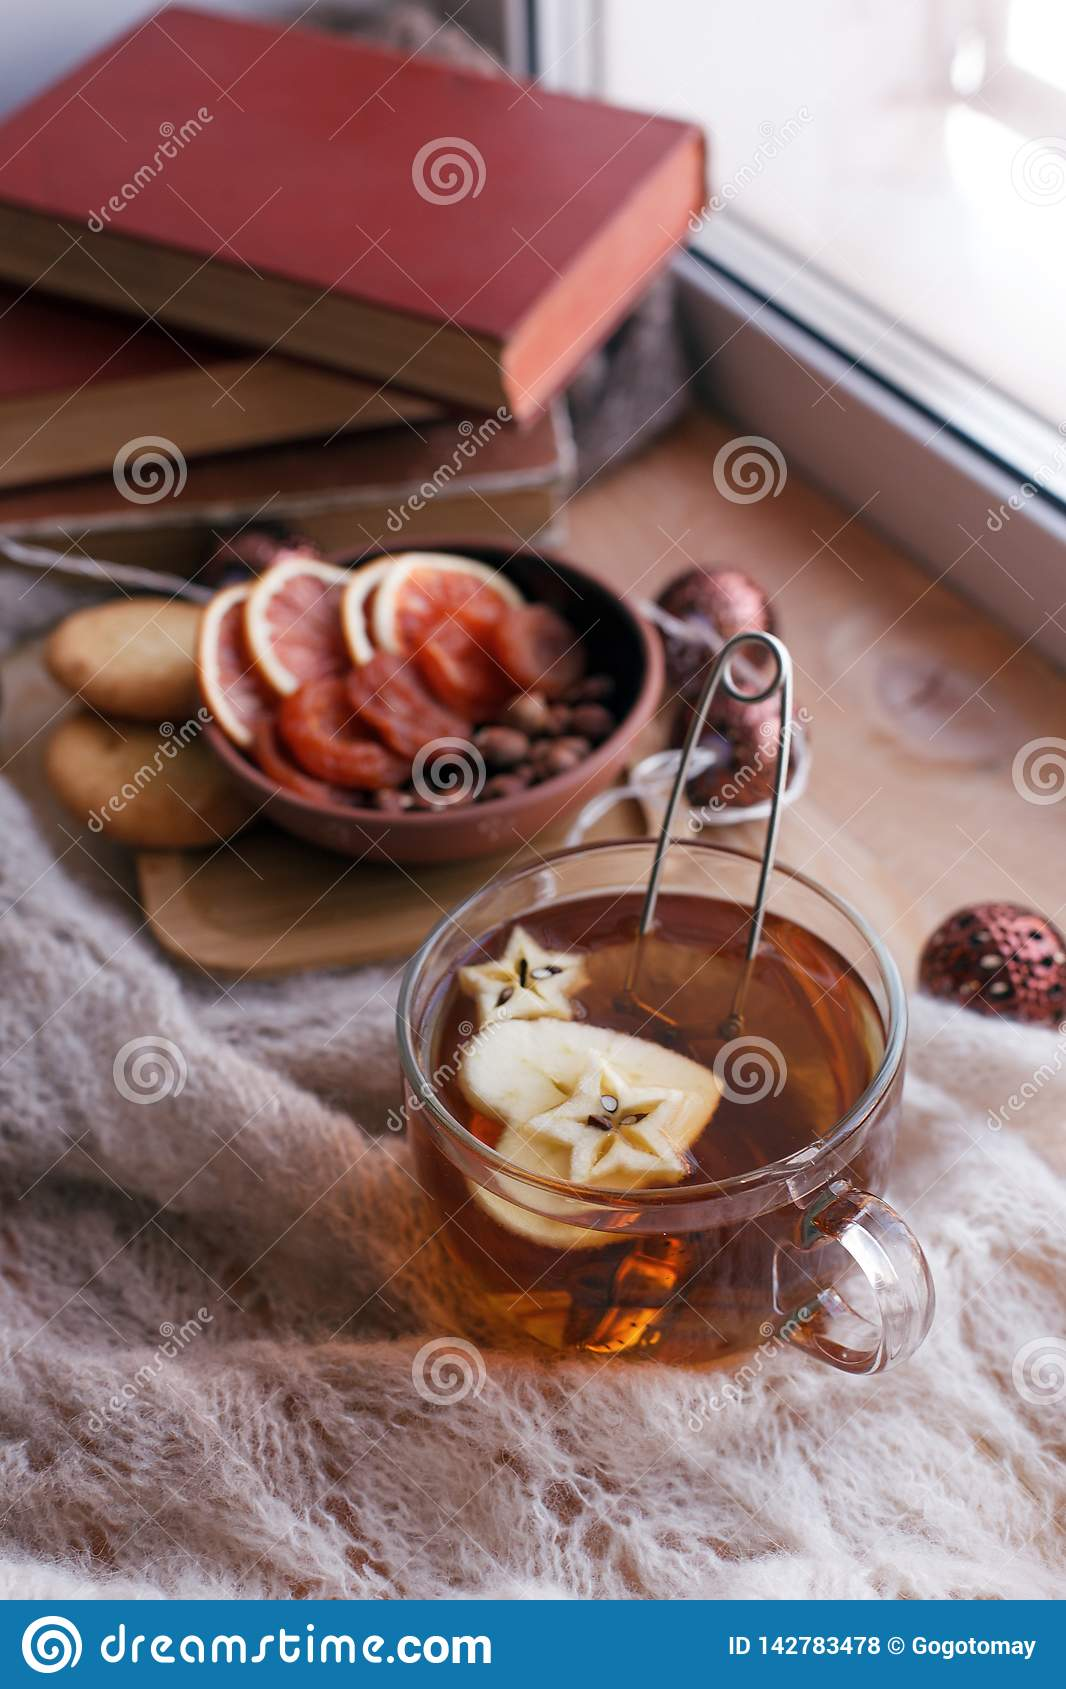 Cup of tea with apple, knit a blanket, dried fruit and books on the window sill, concept of cozy homely weekend, relax, tea party